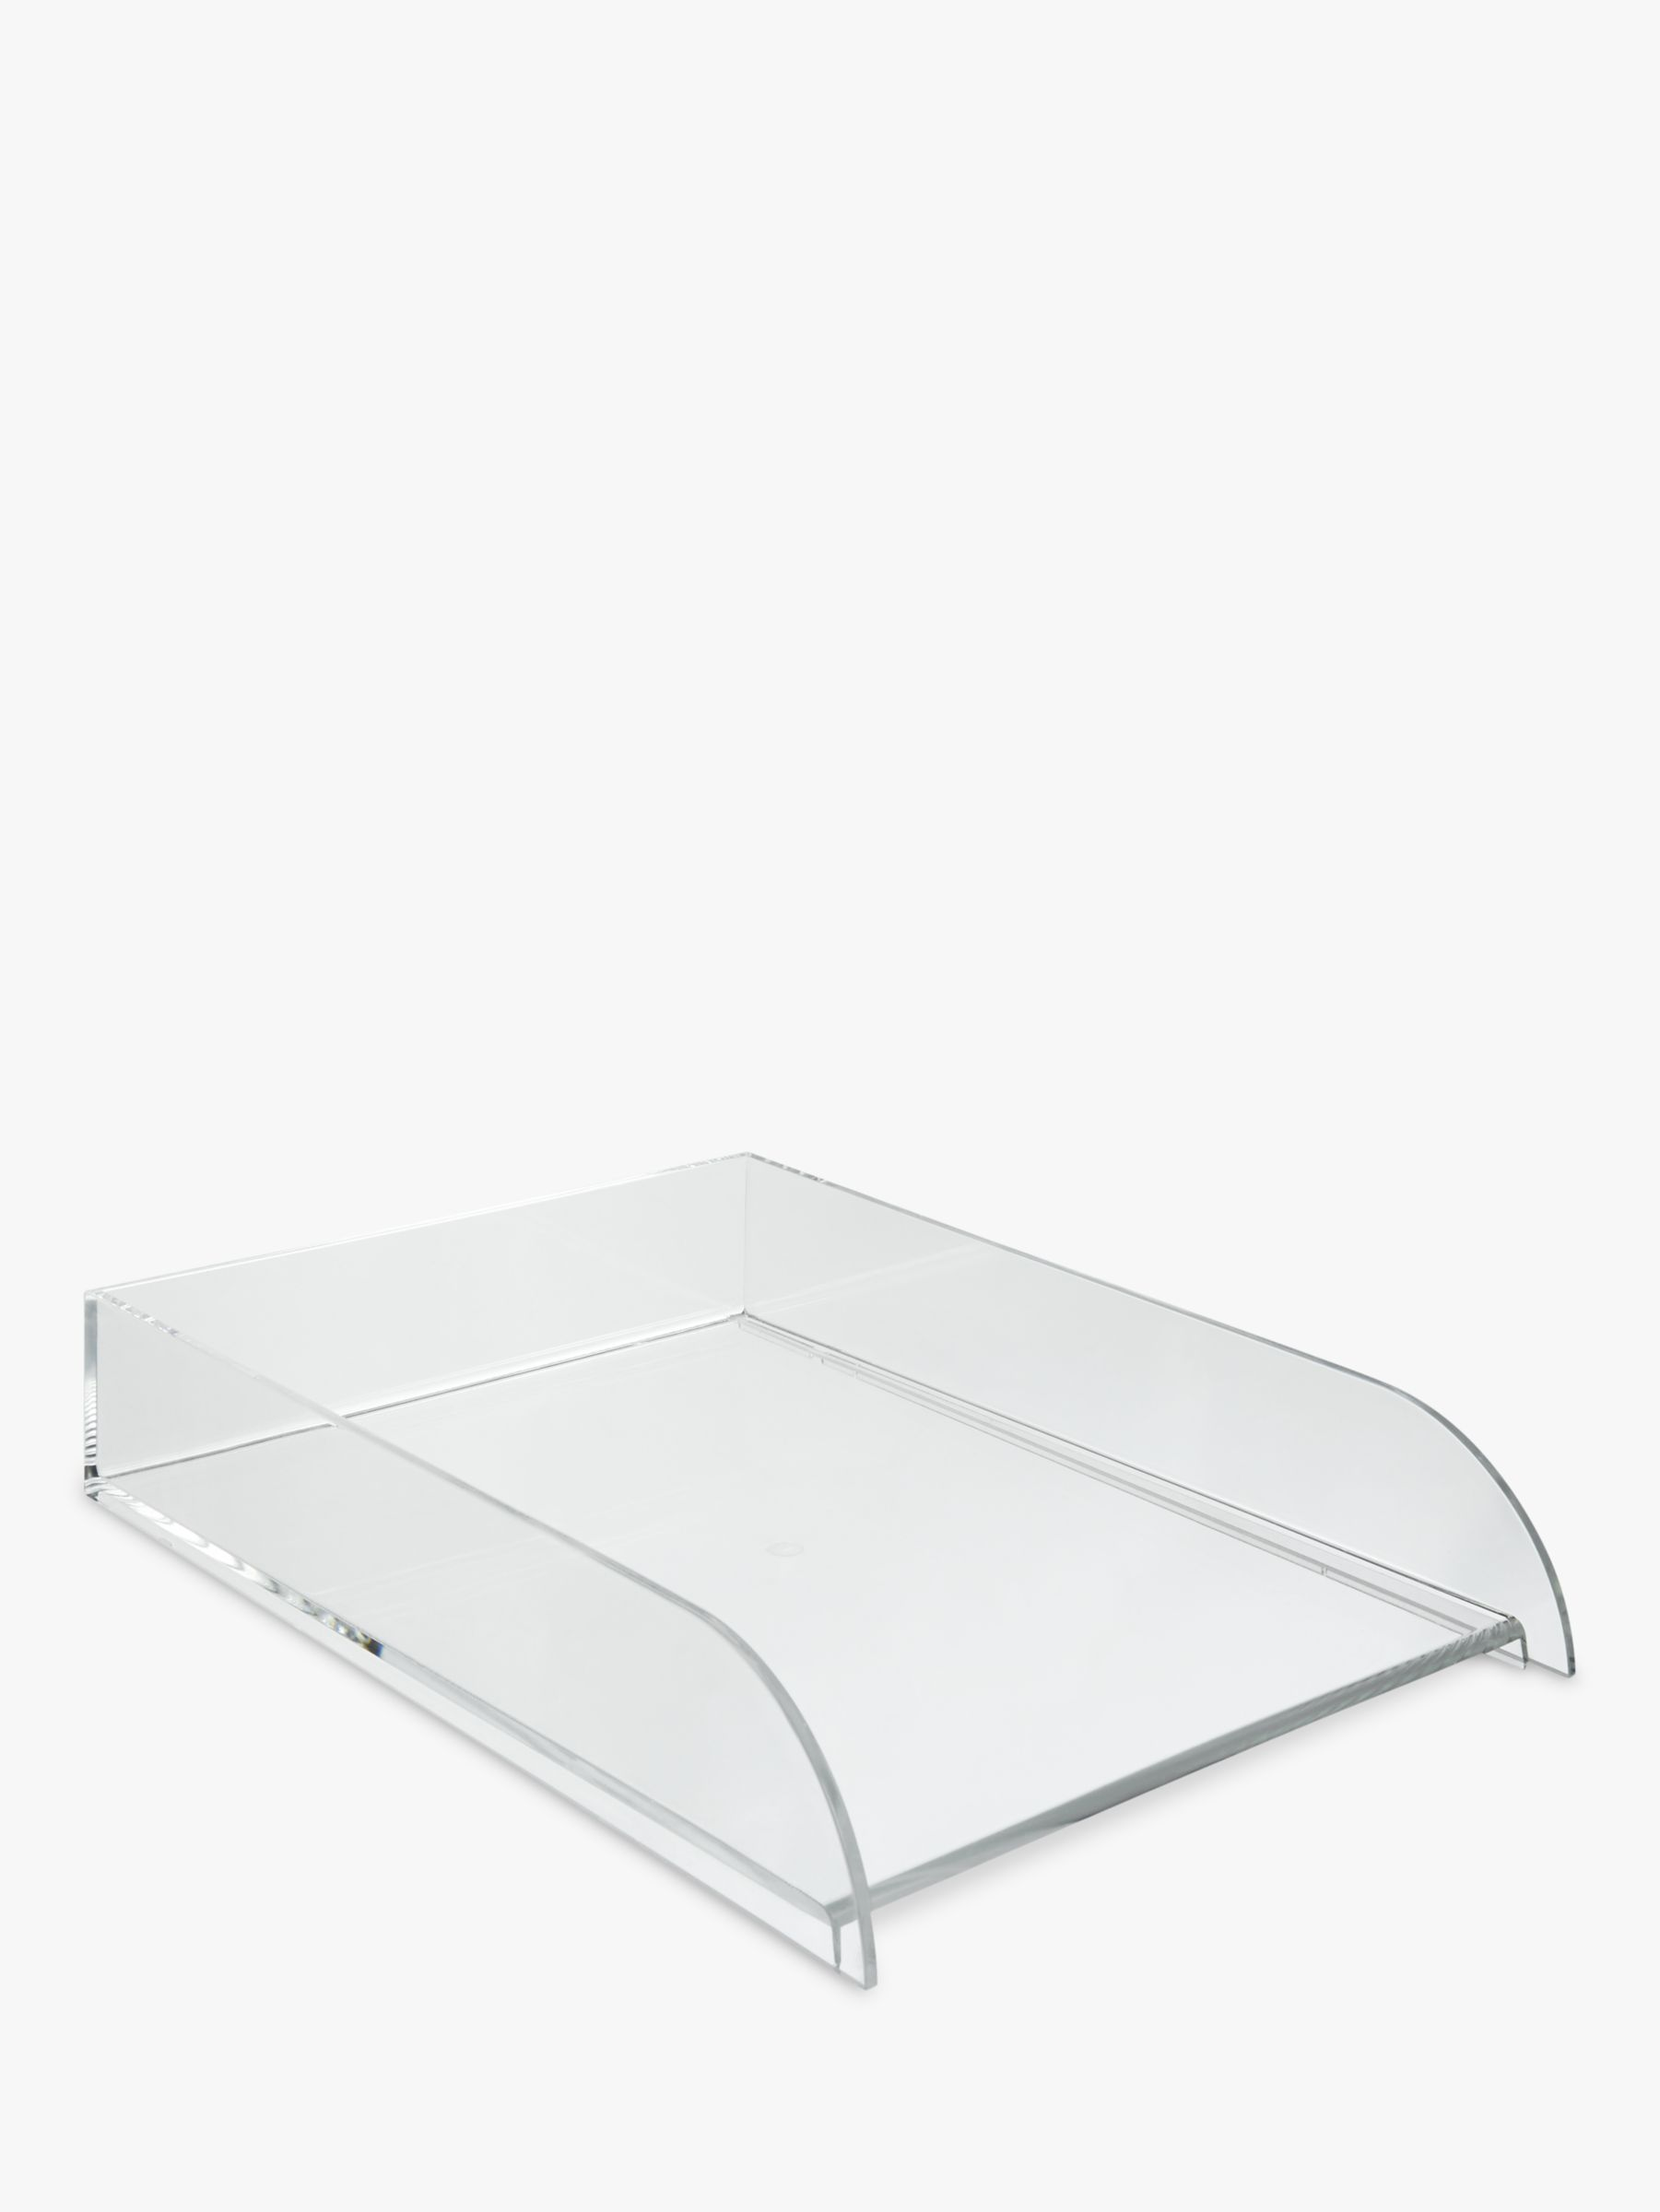 Osco Osco Stackable Letter Tray, Clear